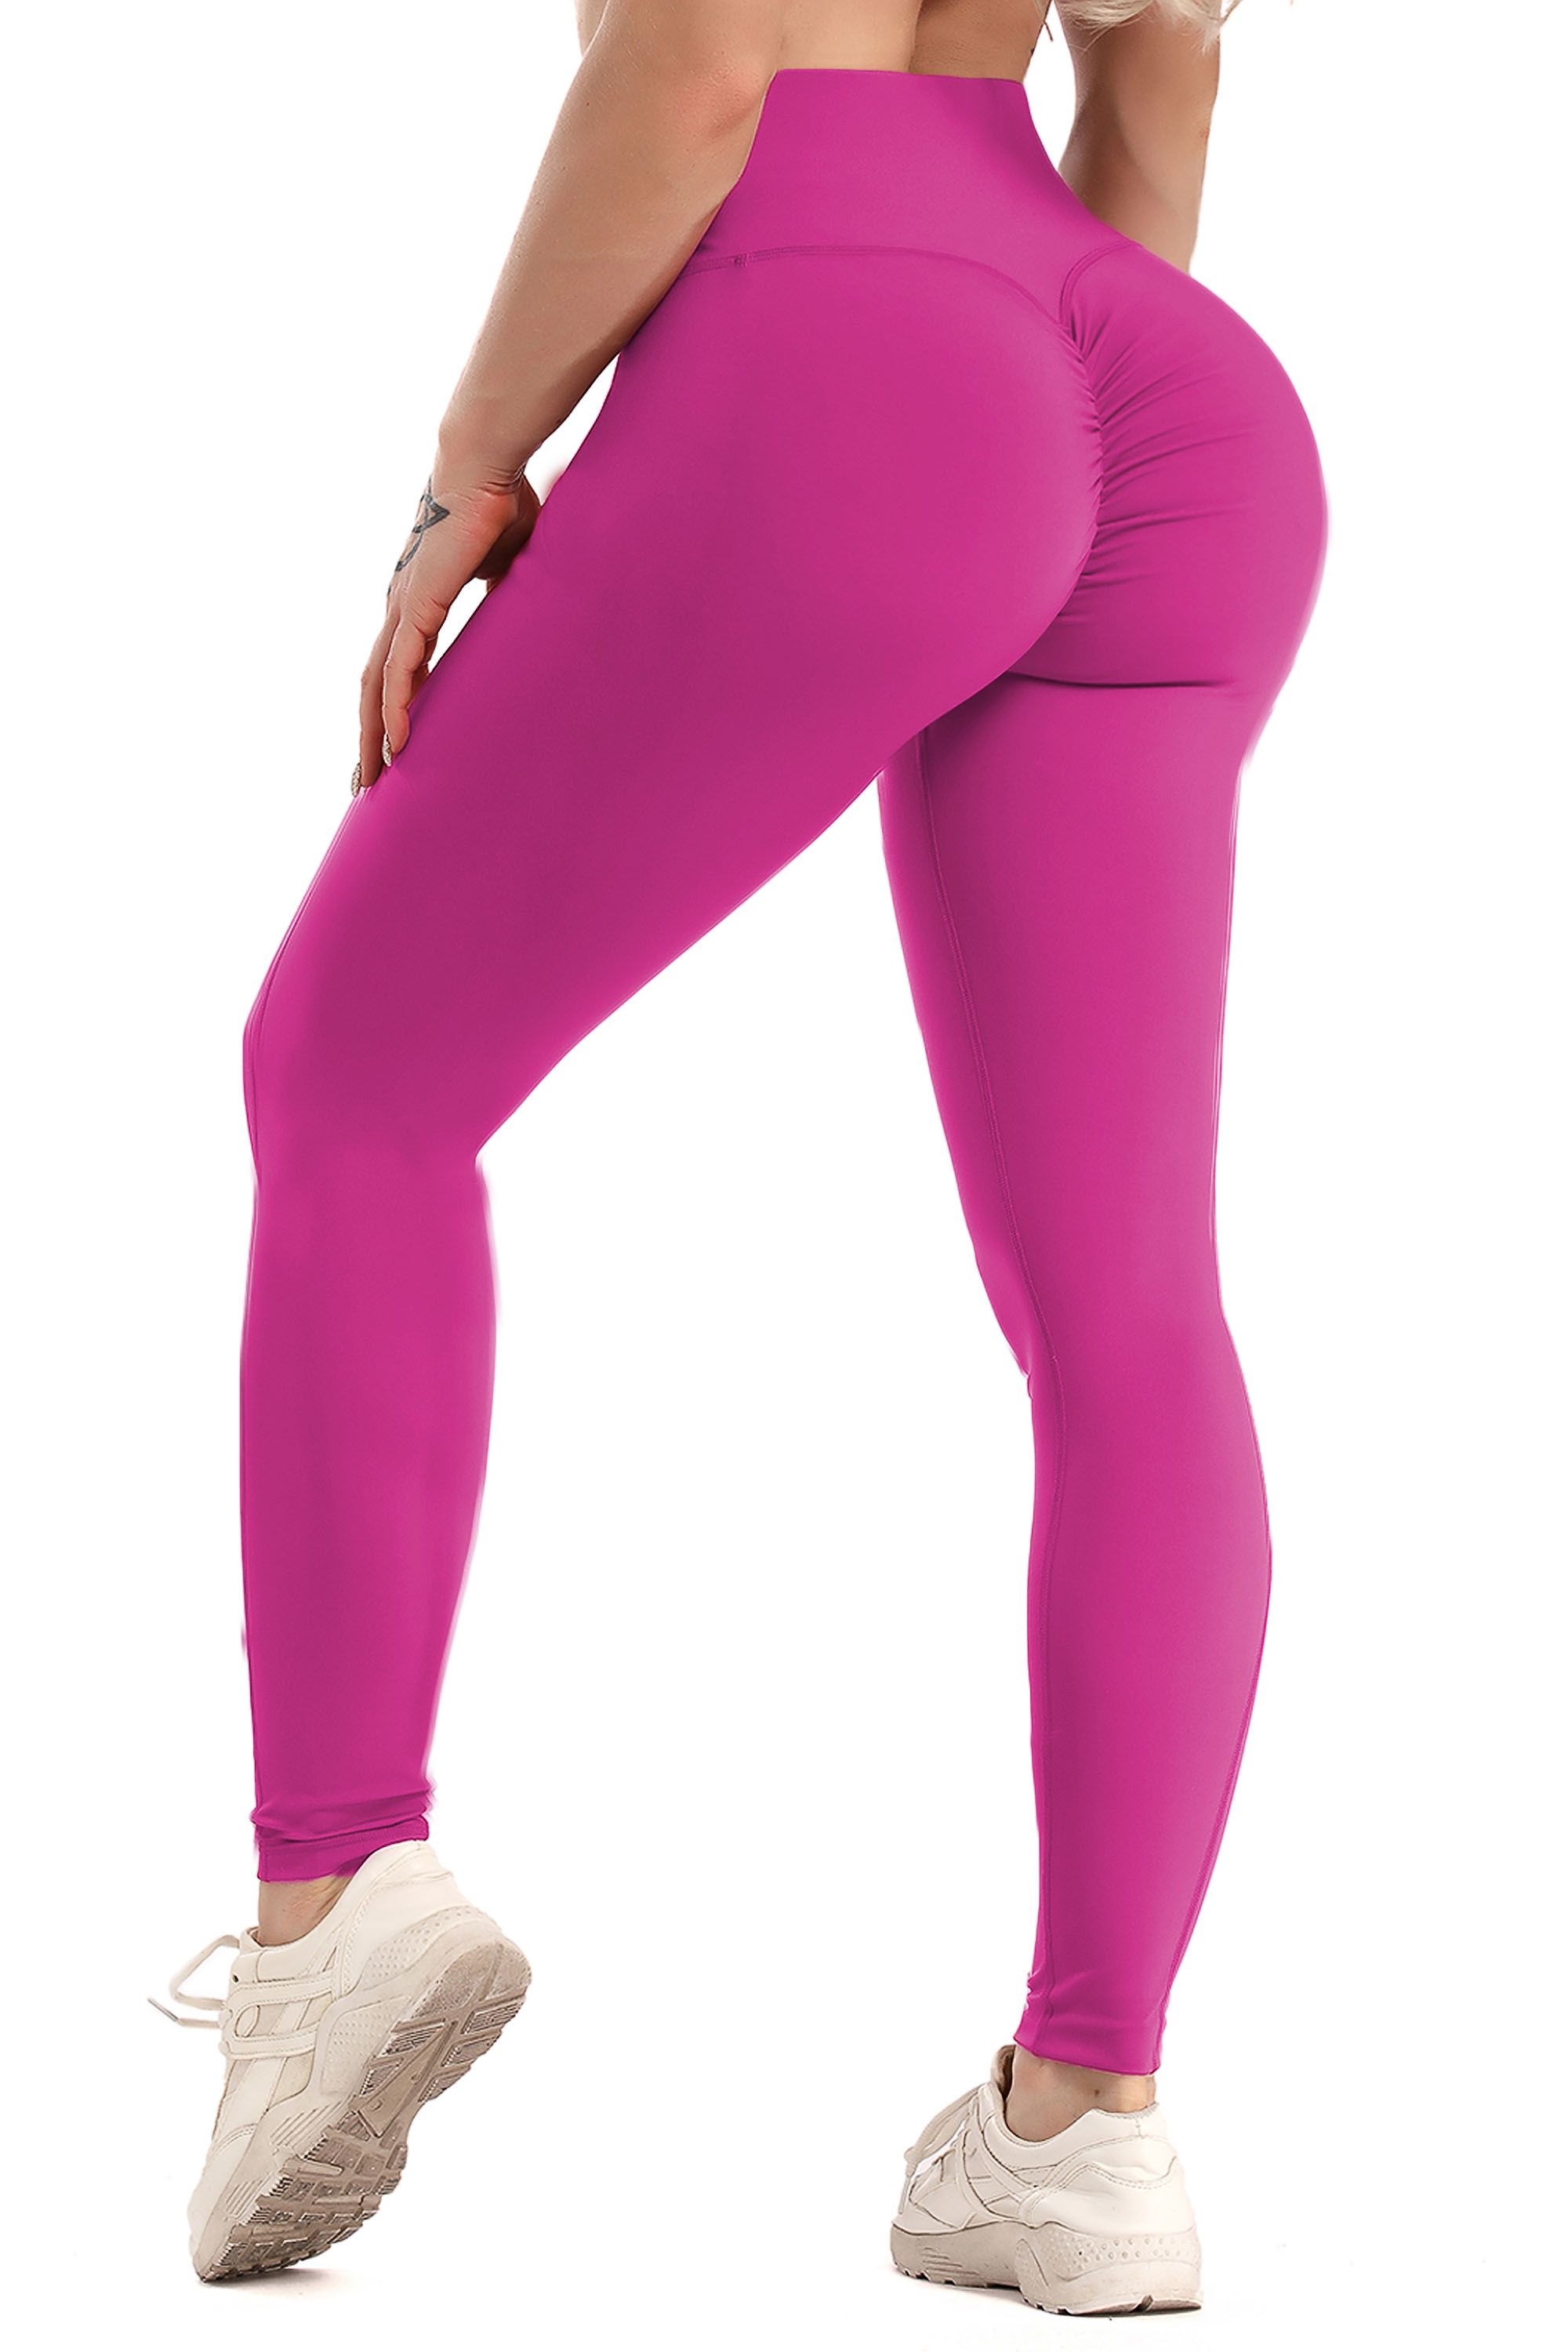 PINK Ladies Yoga Pant Leggings Soft Stretch Fitness Gym Workout High Waist Booty